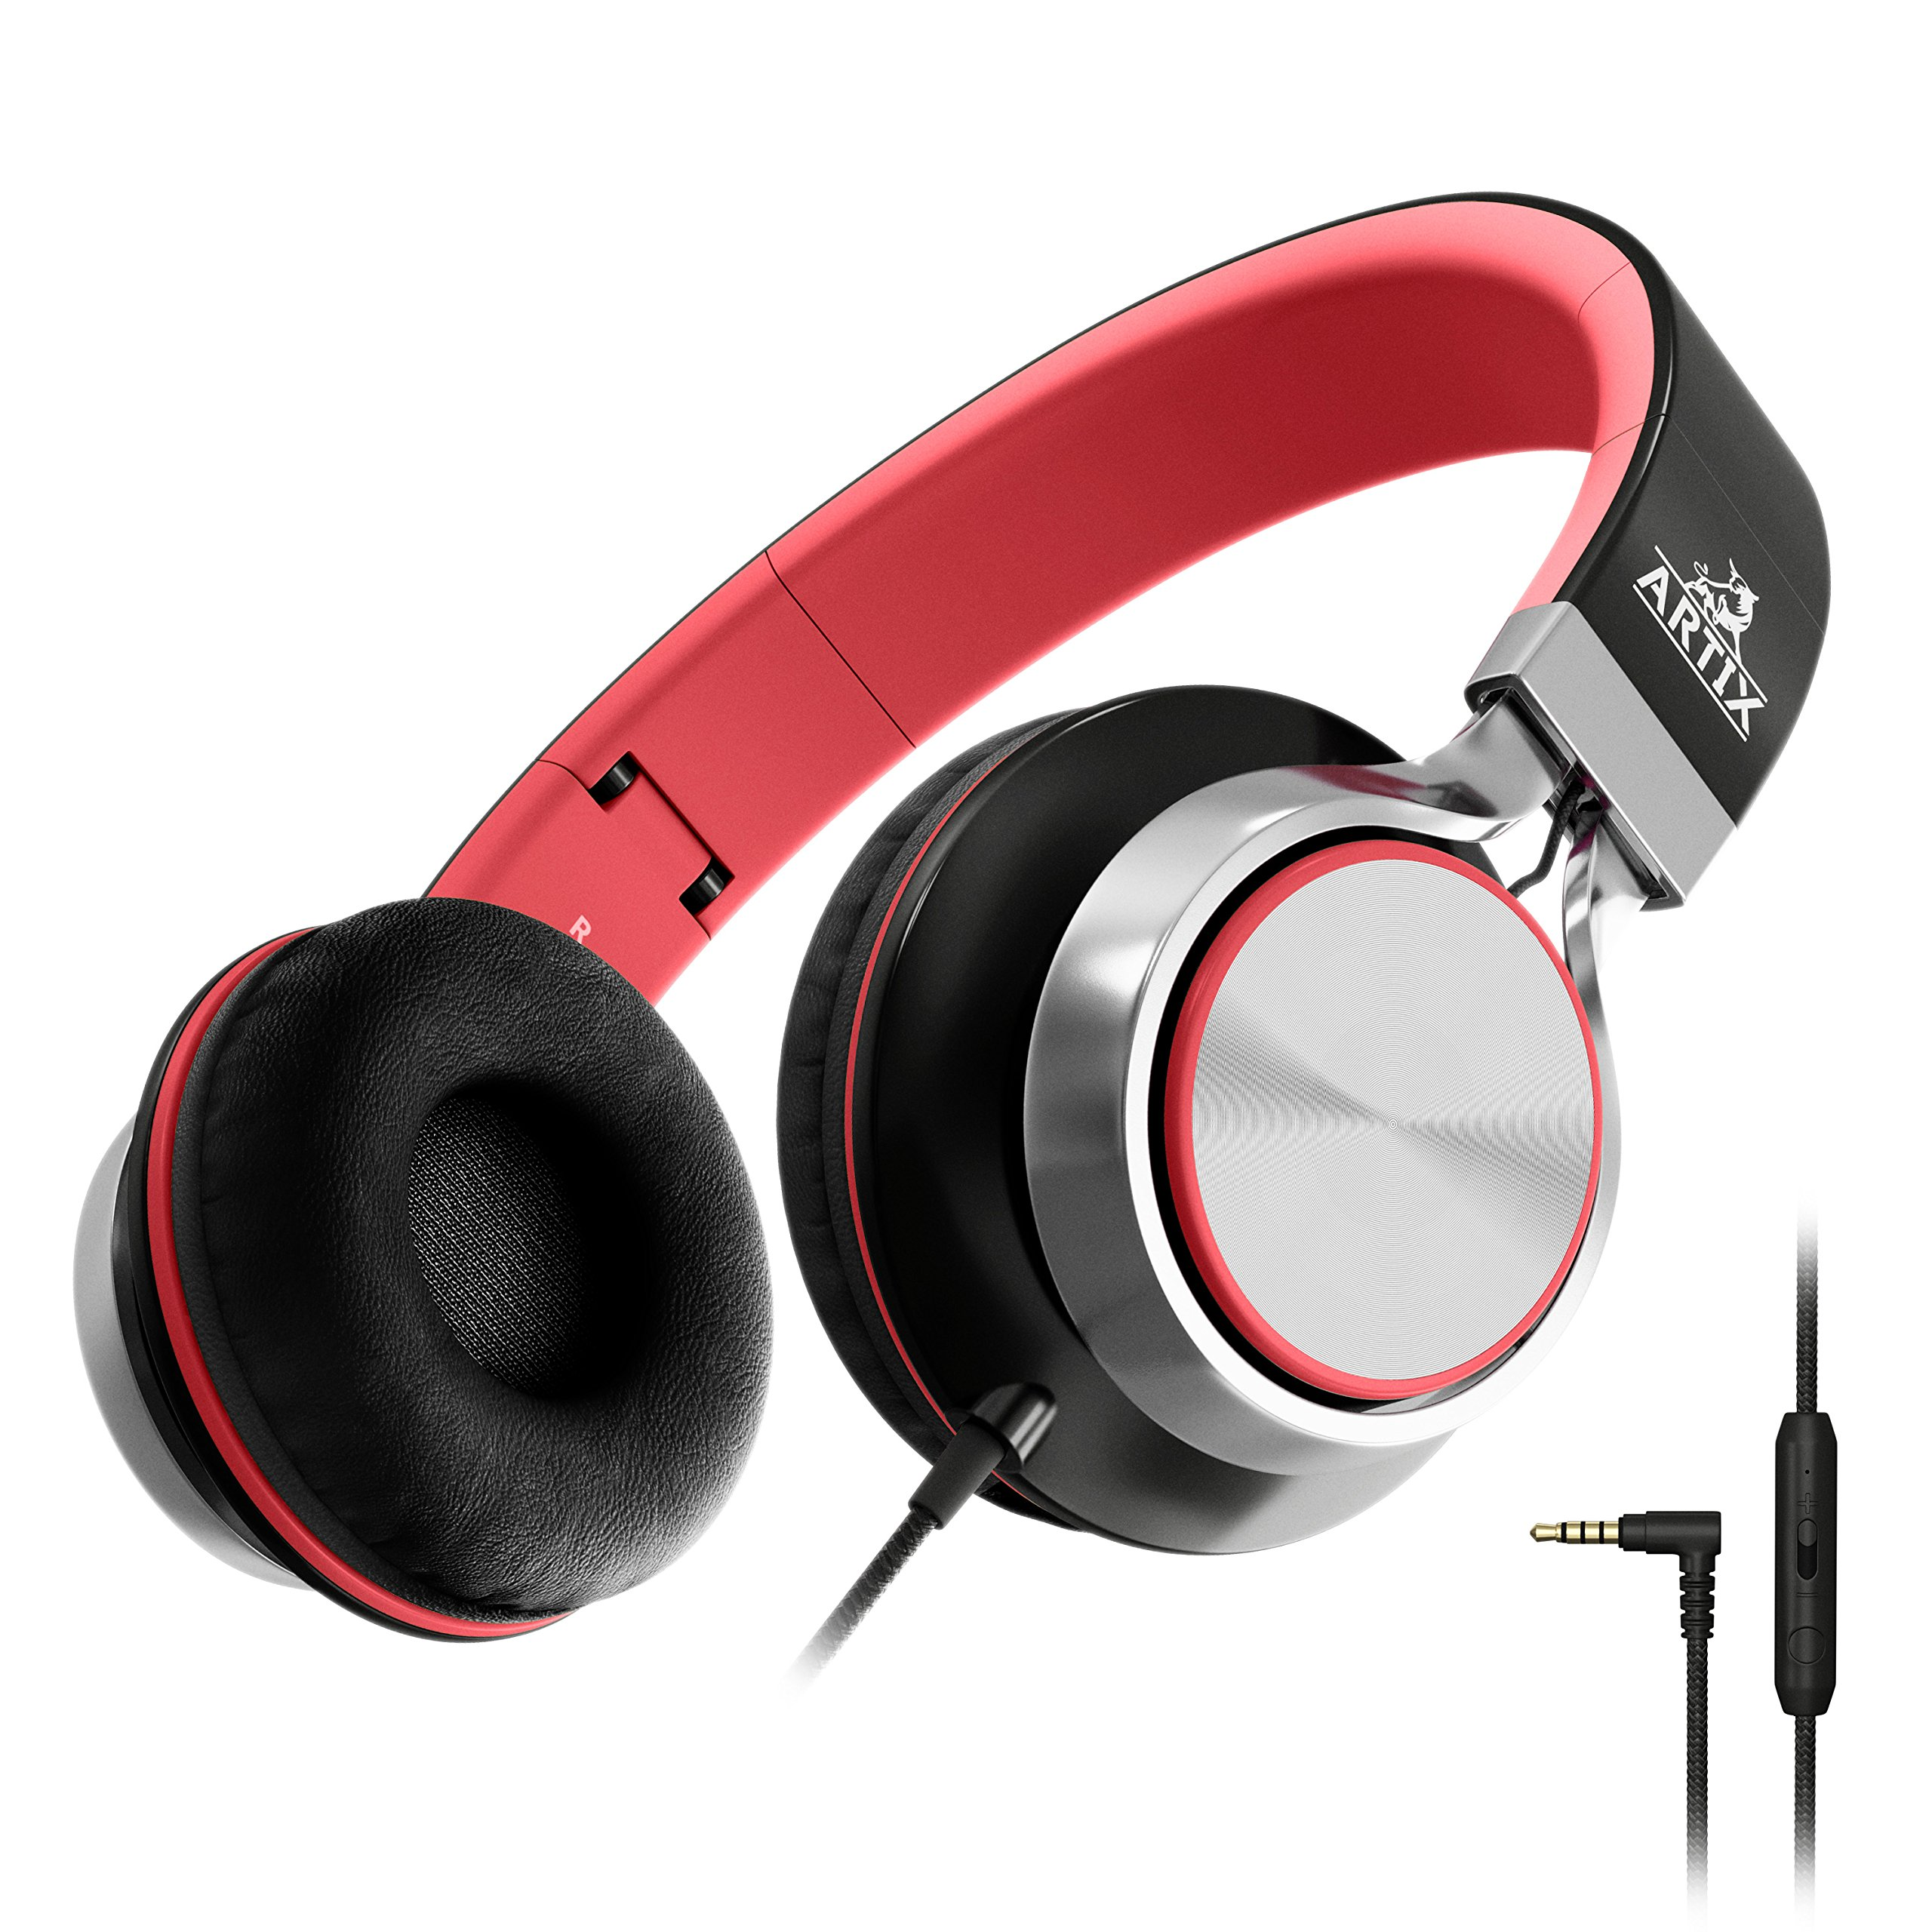 Artix Foldable Headphones with Microphone and Volume Control | NRGSound CL750 On-Ear Stereo Earphones | Great for Kids/Teens/Adults (Black/Red) by ARTIX